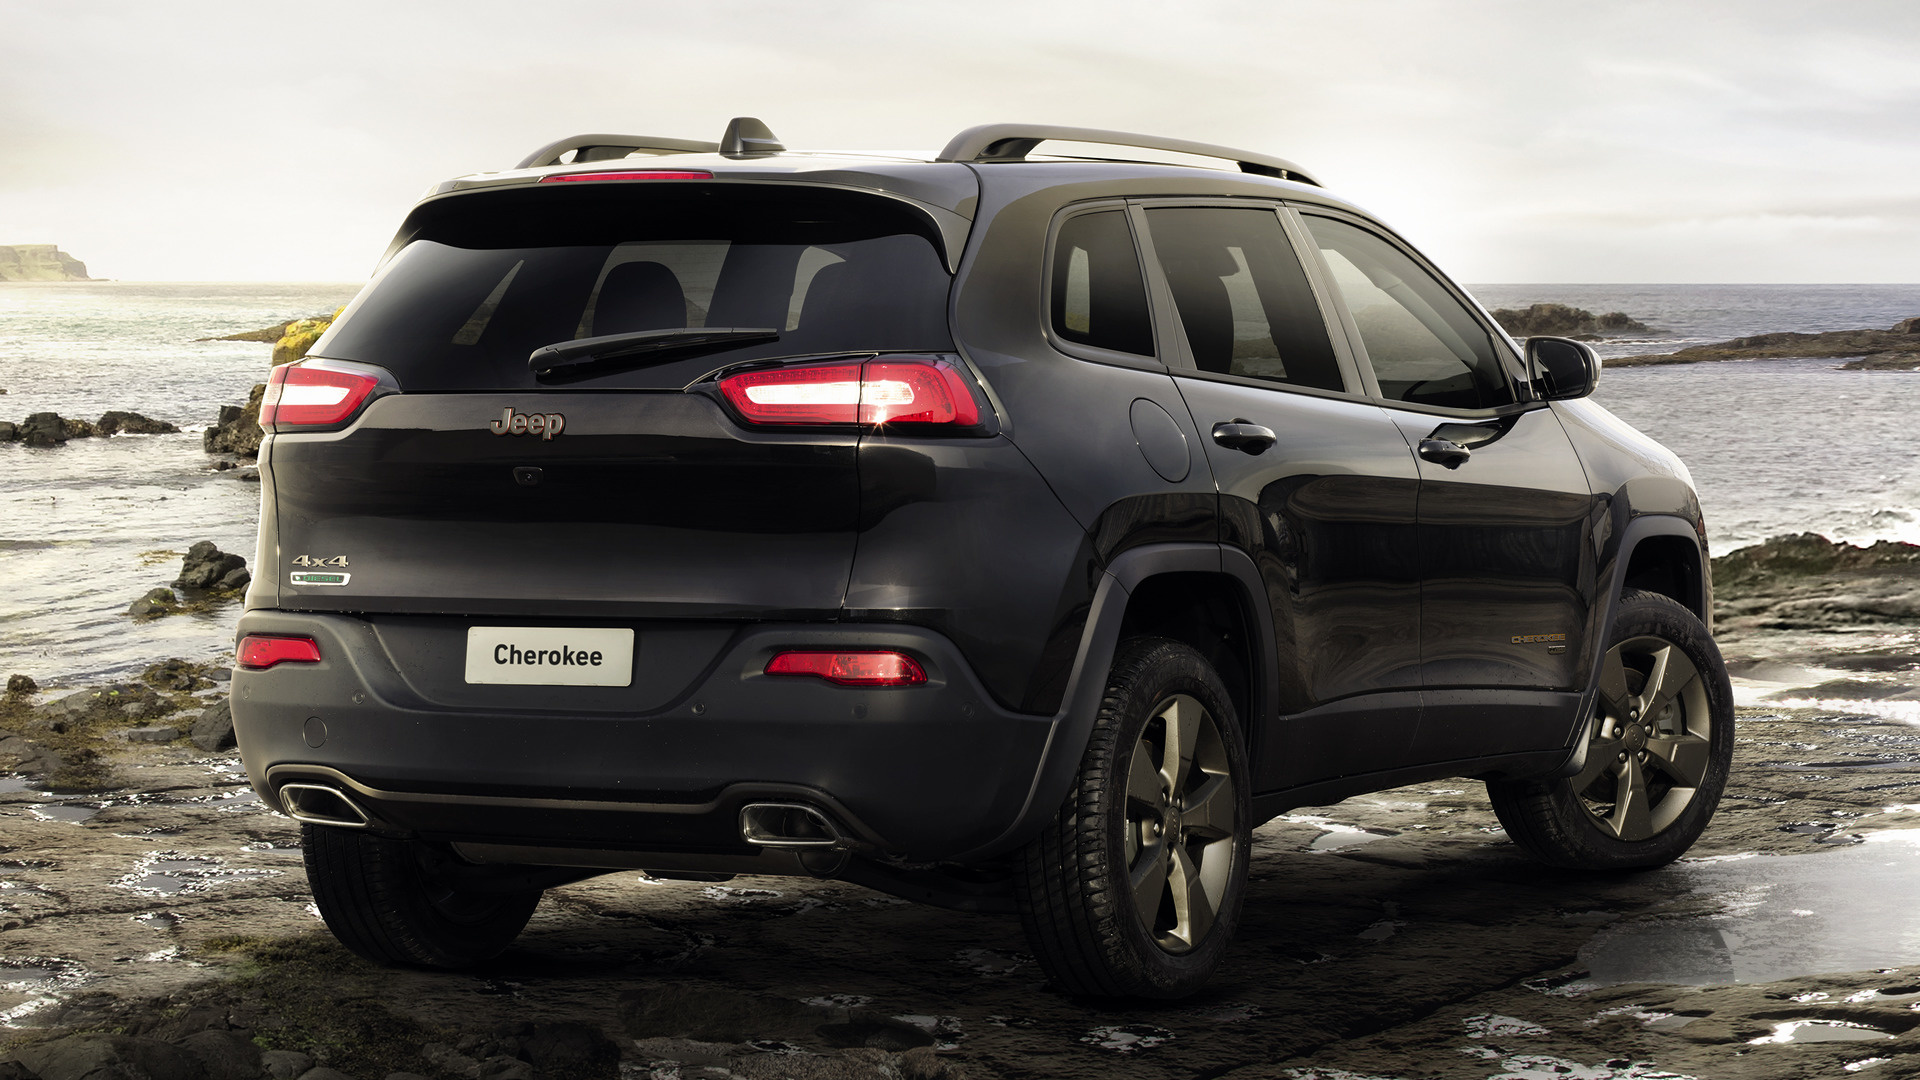 2016 Jeep Cherokee 75th Anniversary Hd Wallpaper Background Image